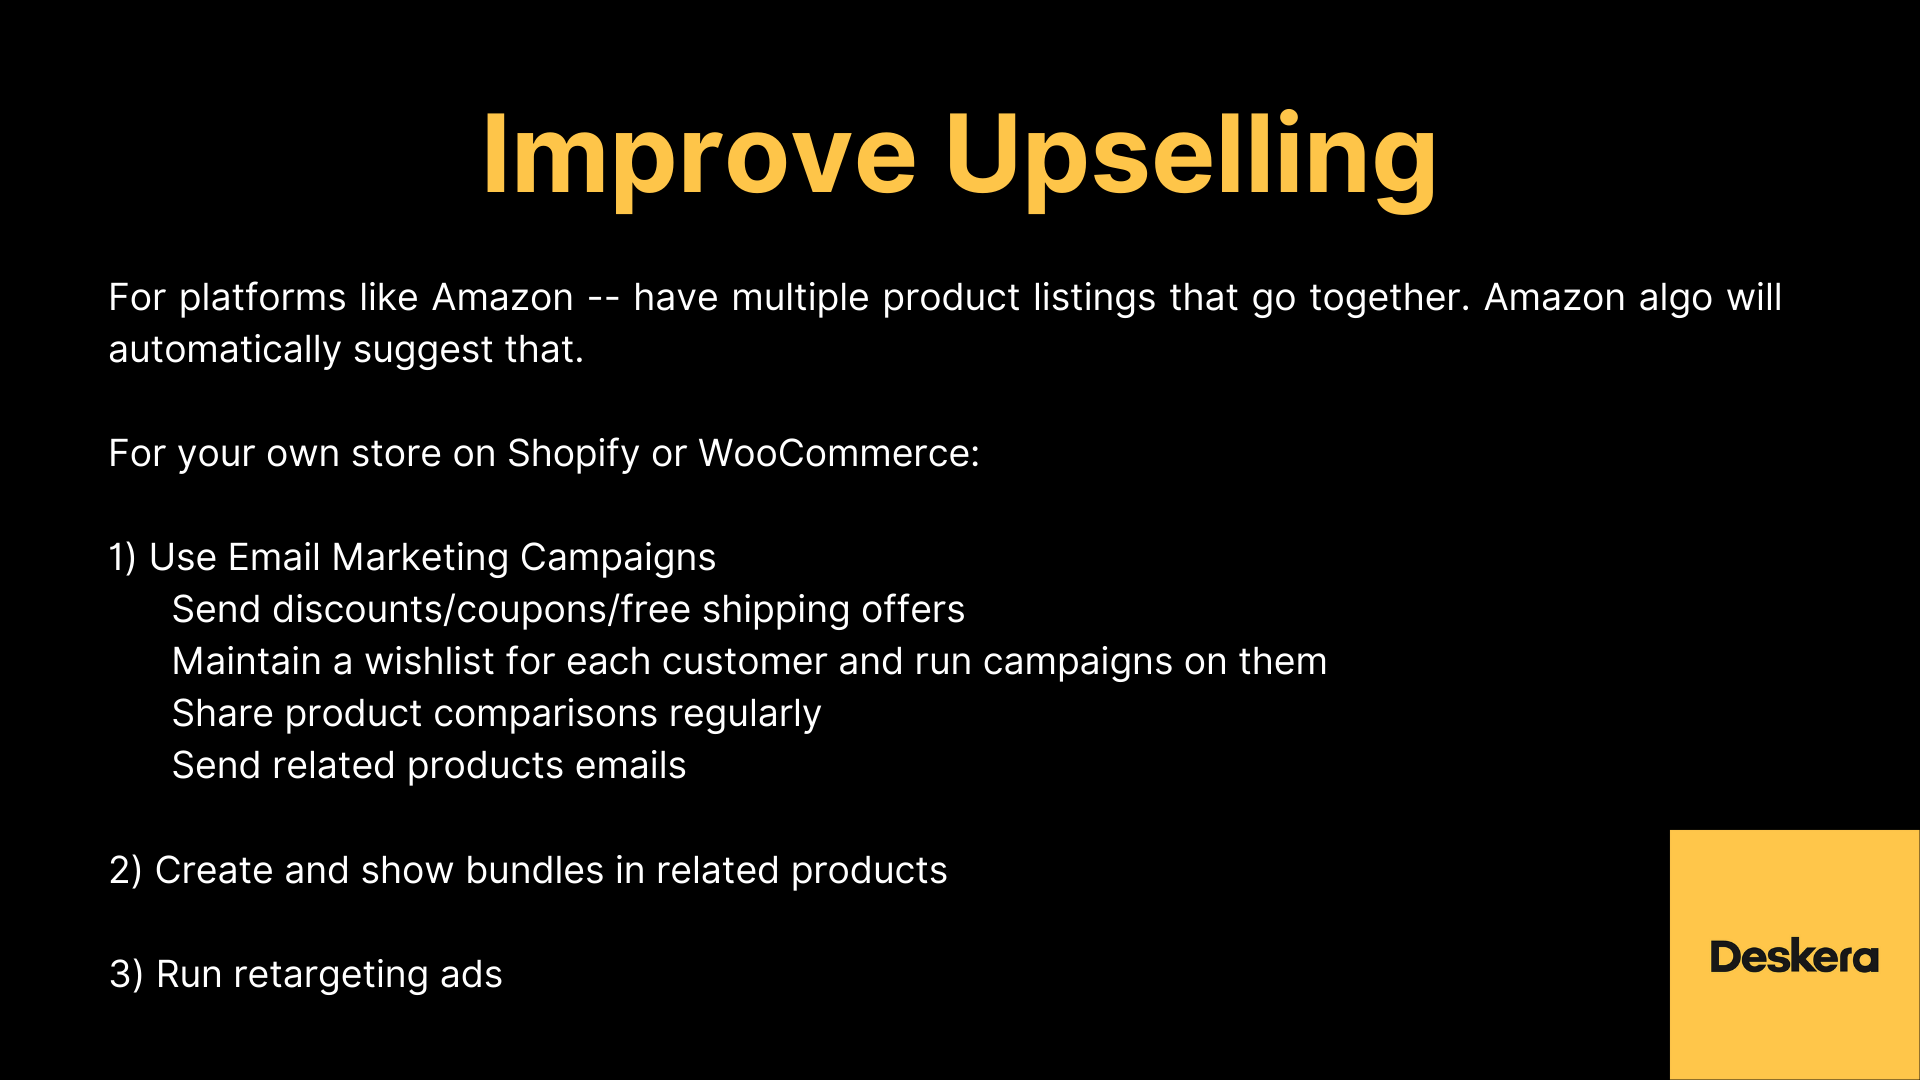 eCommerce Tips for Improving Upselling to Improve Sales of Your Business